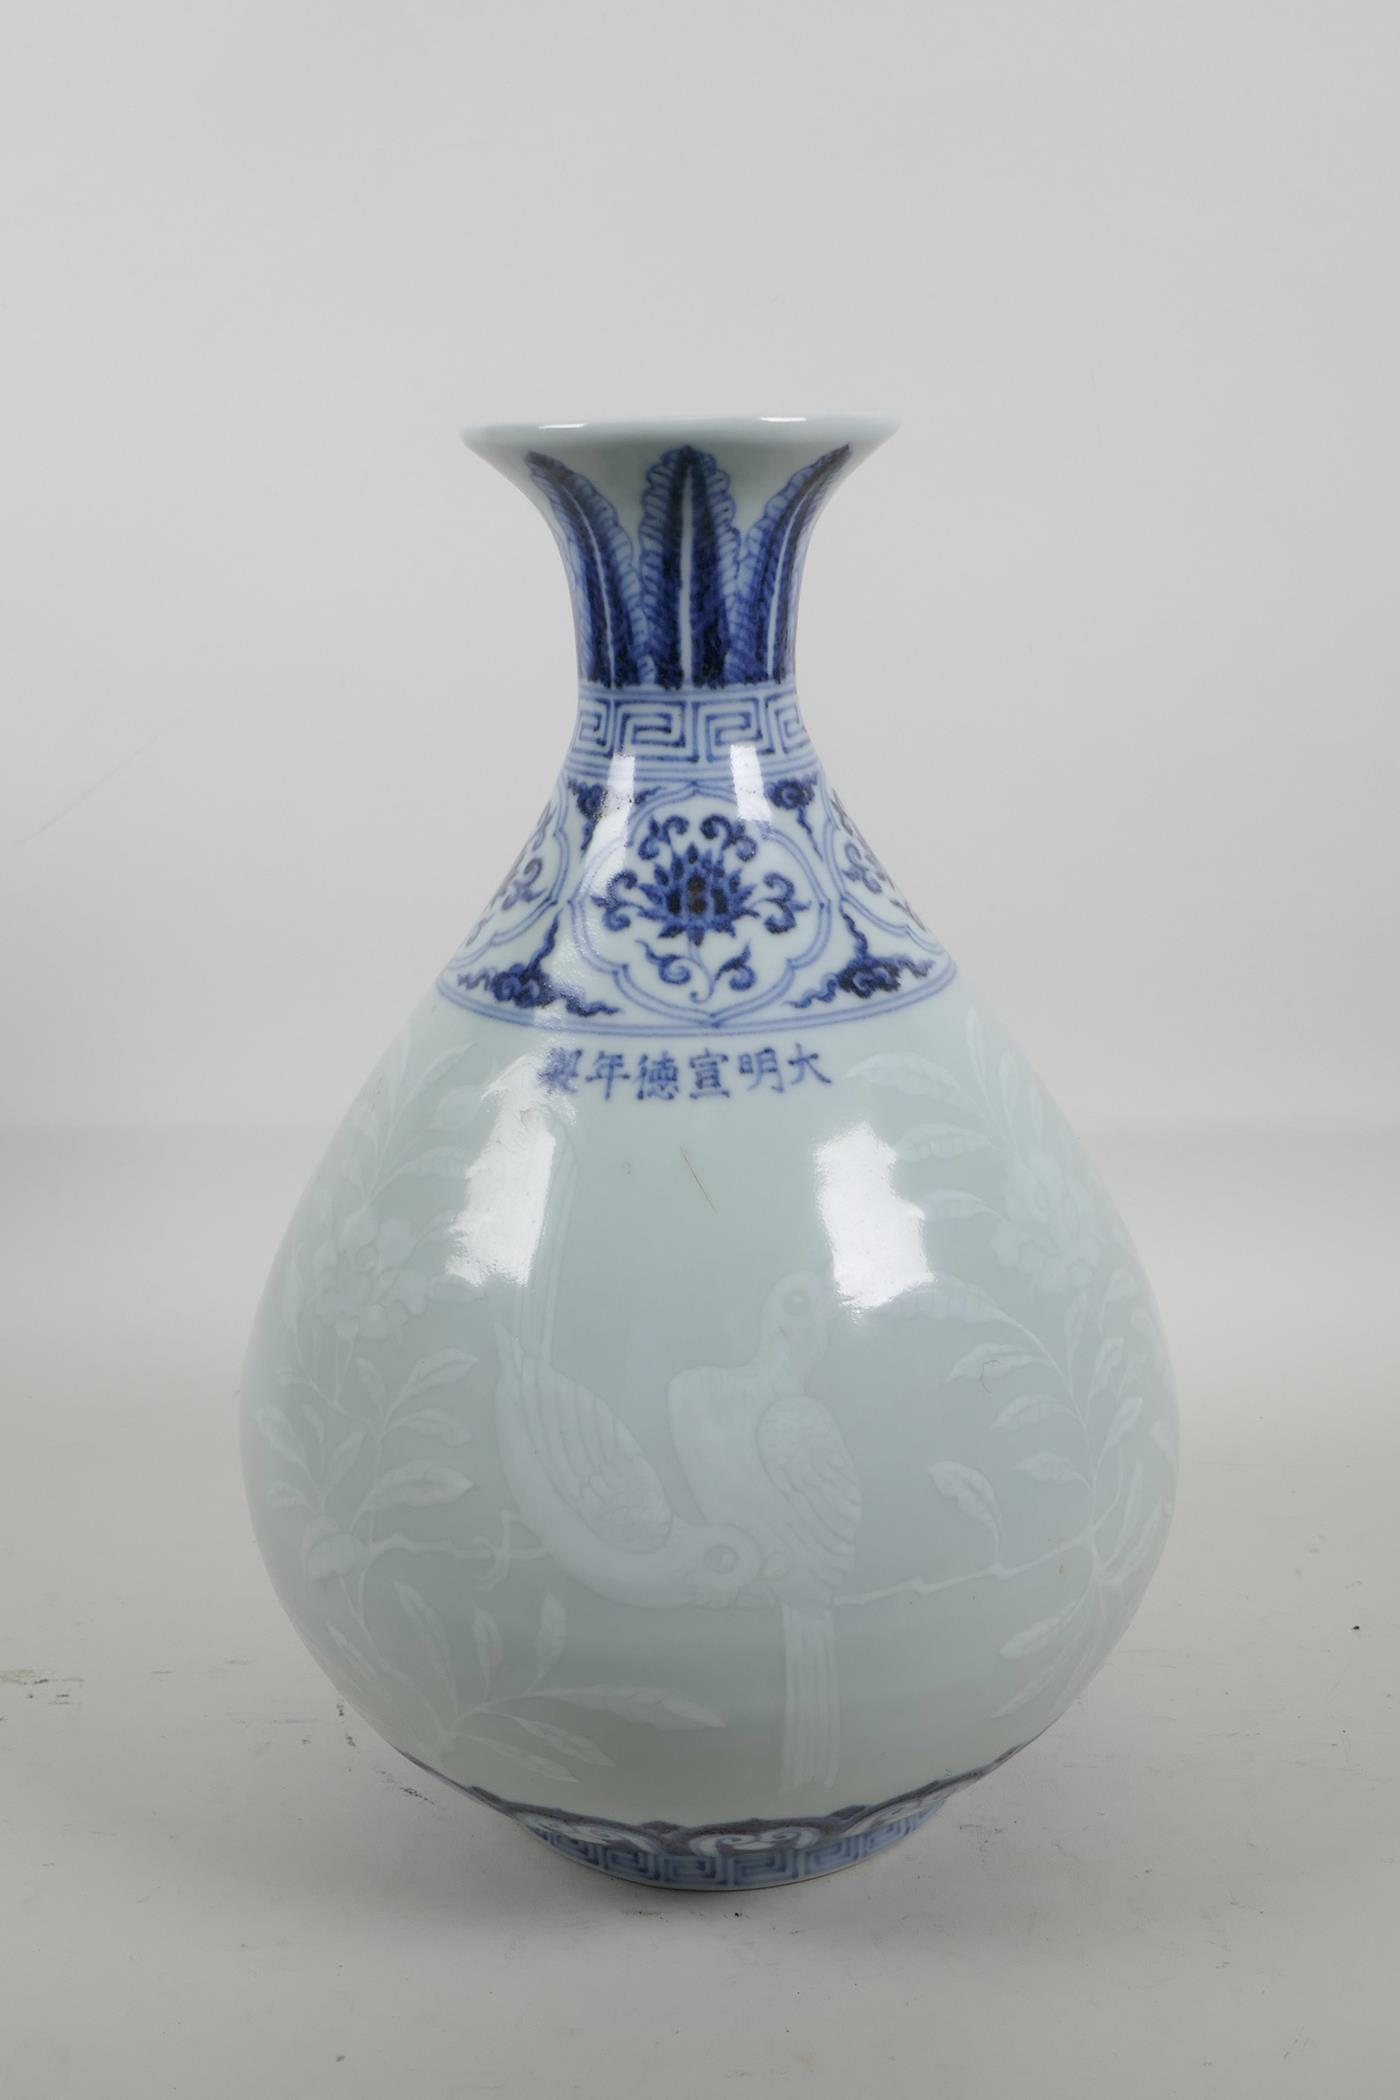 Lot 55 - A Chinese blue and white porcelain pear shaped vase with a flared rim, decorated with birds